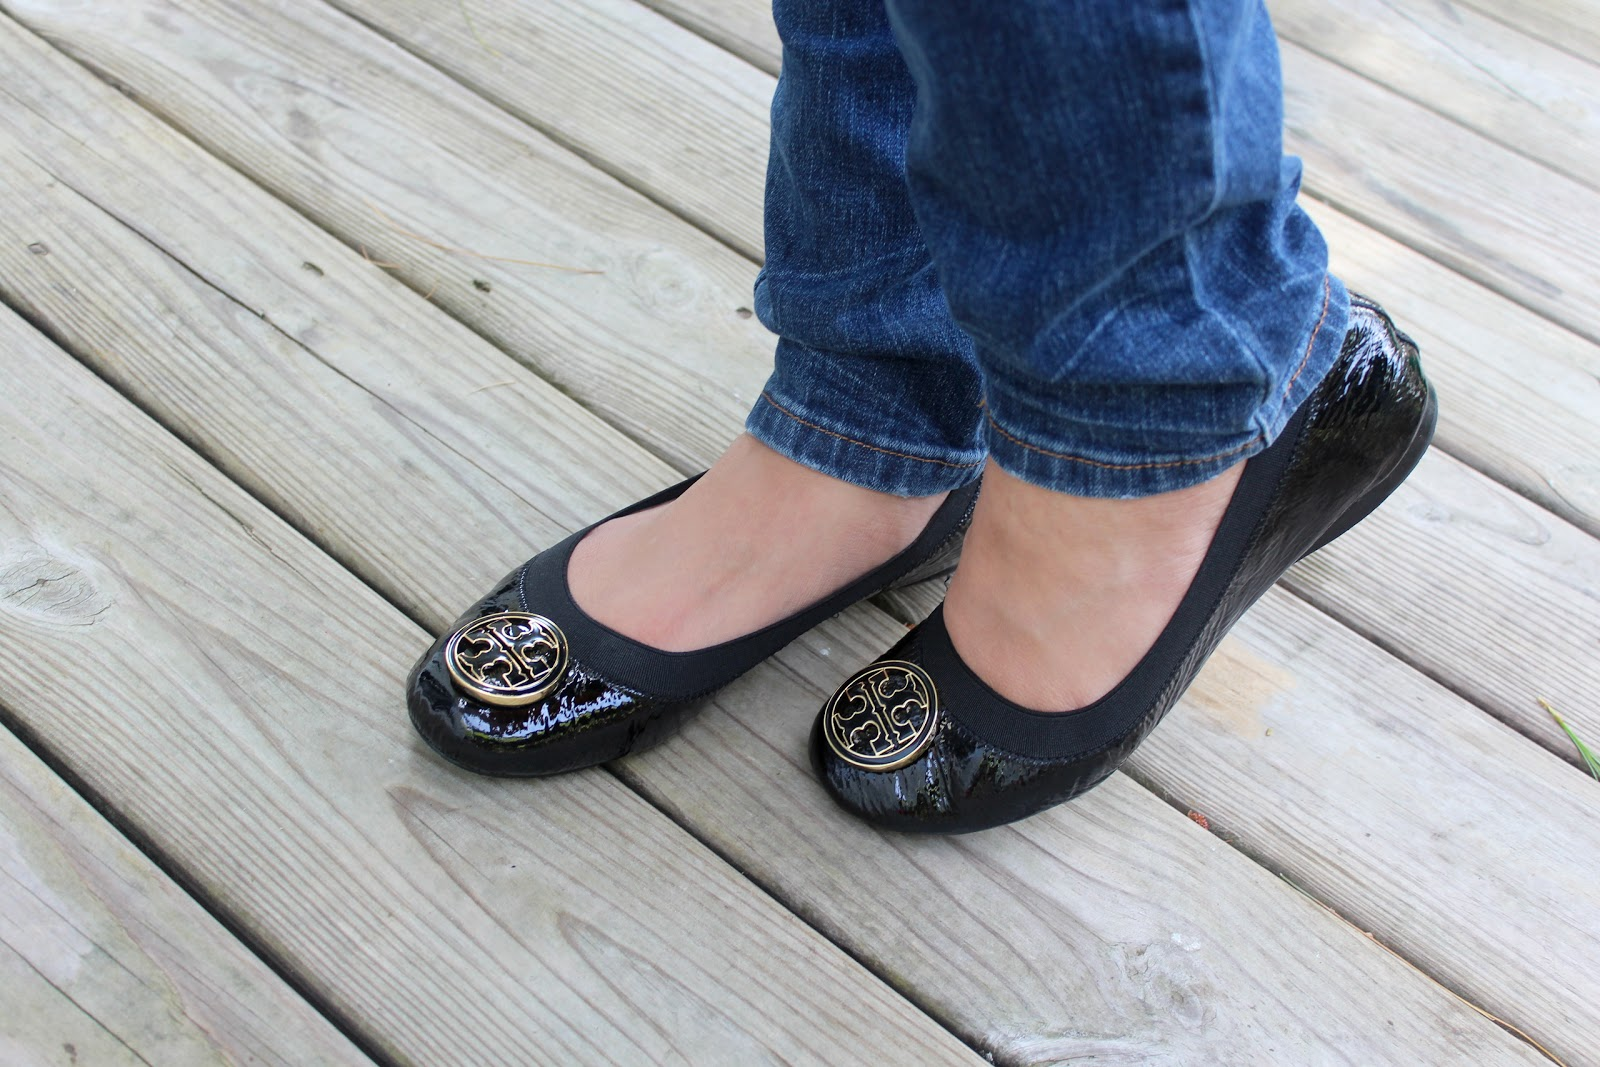 Tory Burch Caroline Ballet Flat Review - 'Vanessa Jhoy Blog. '